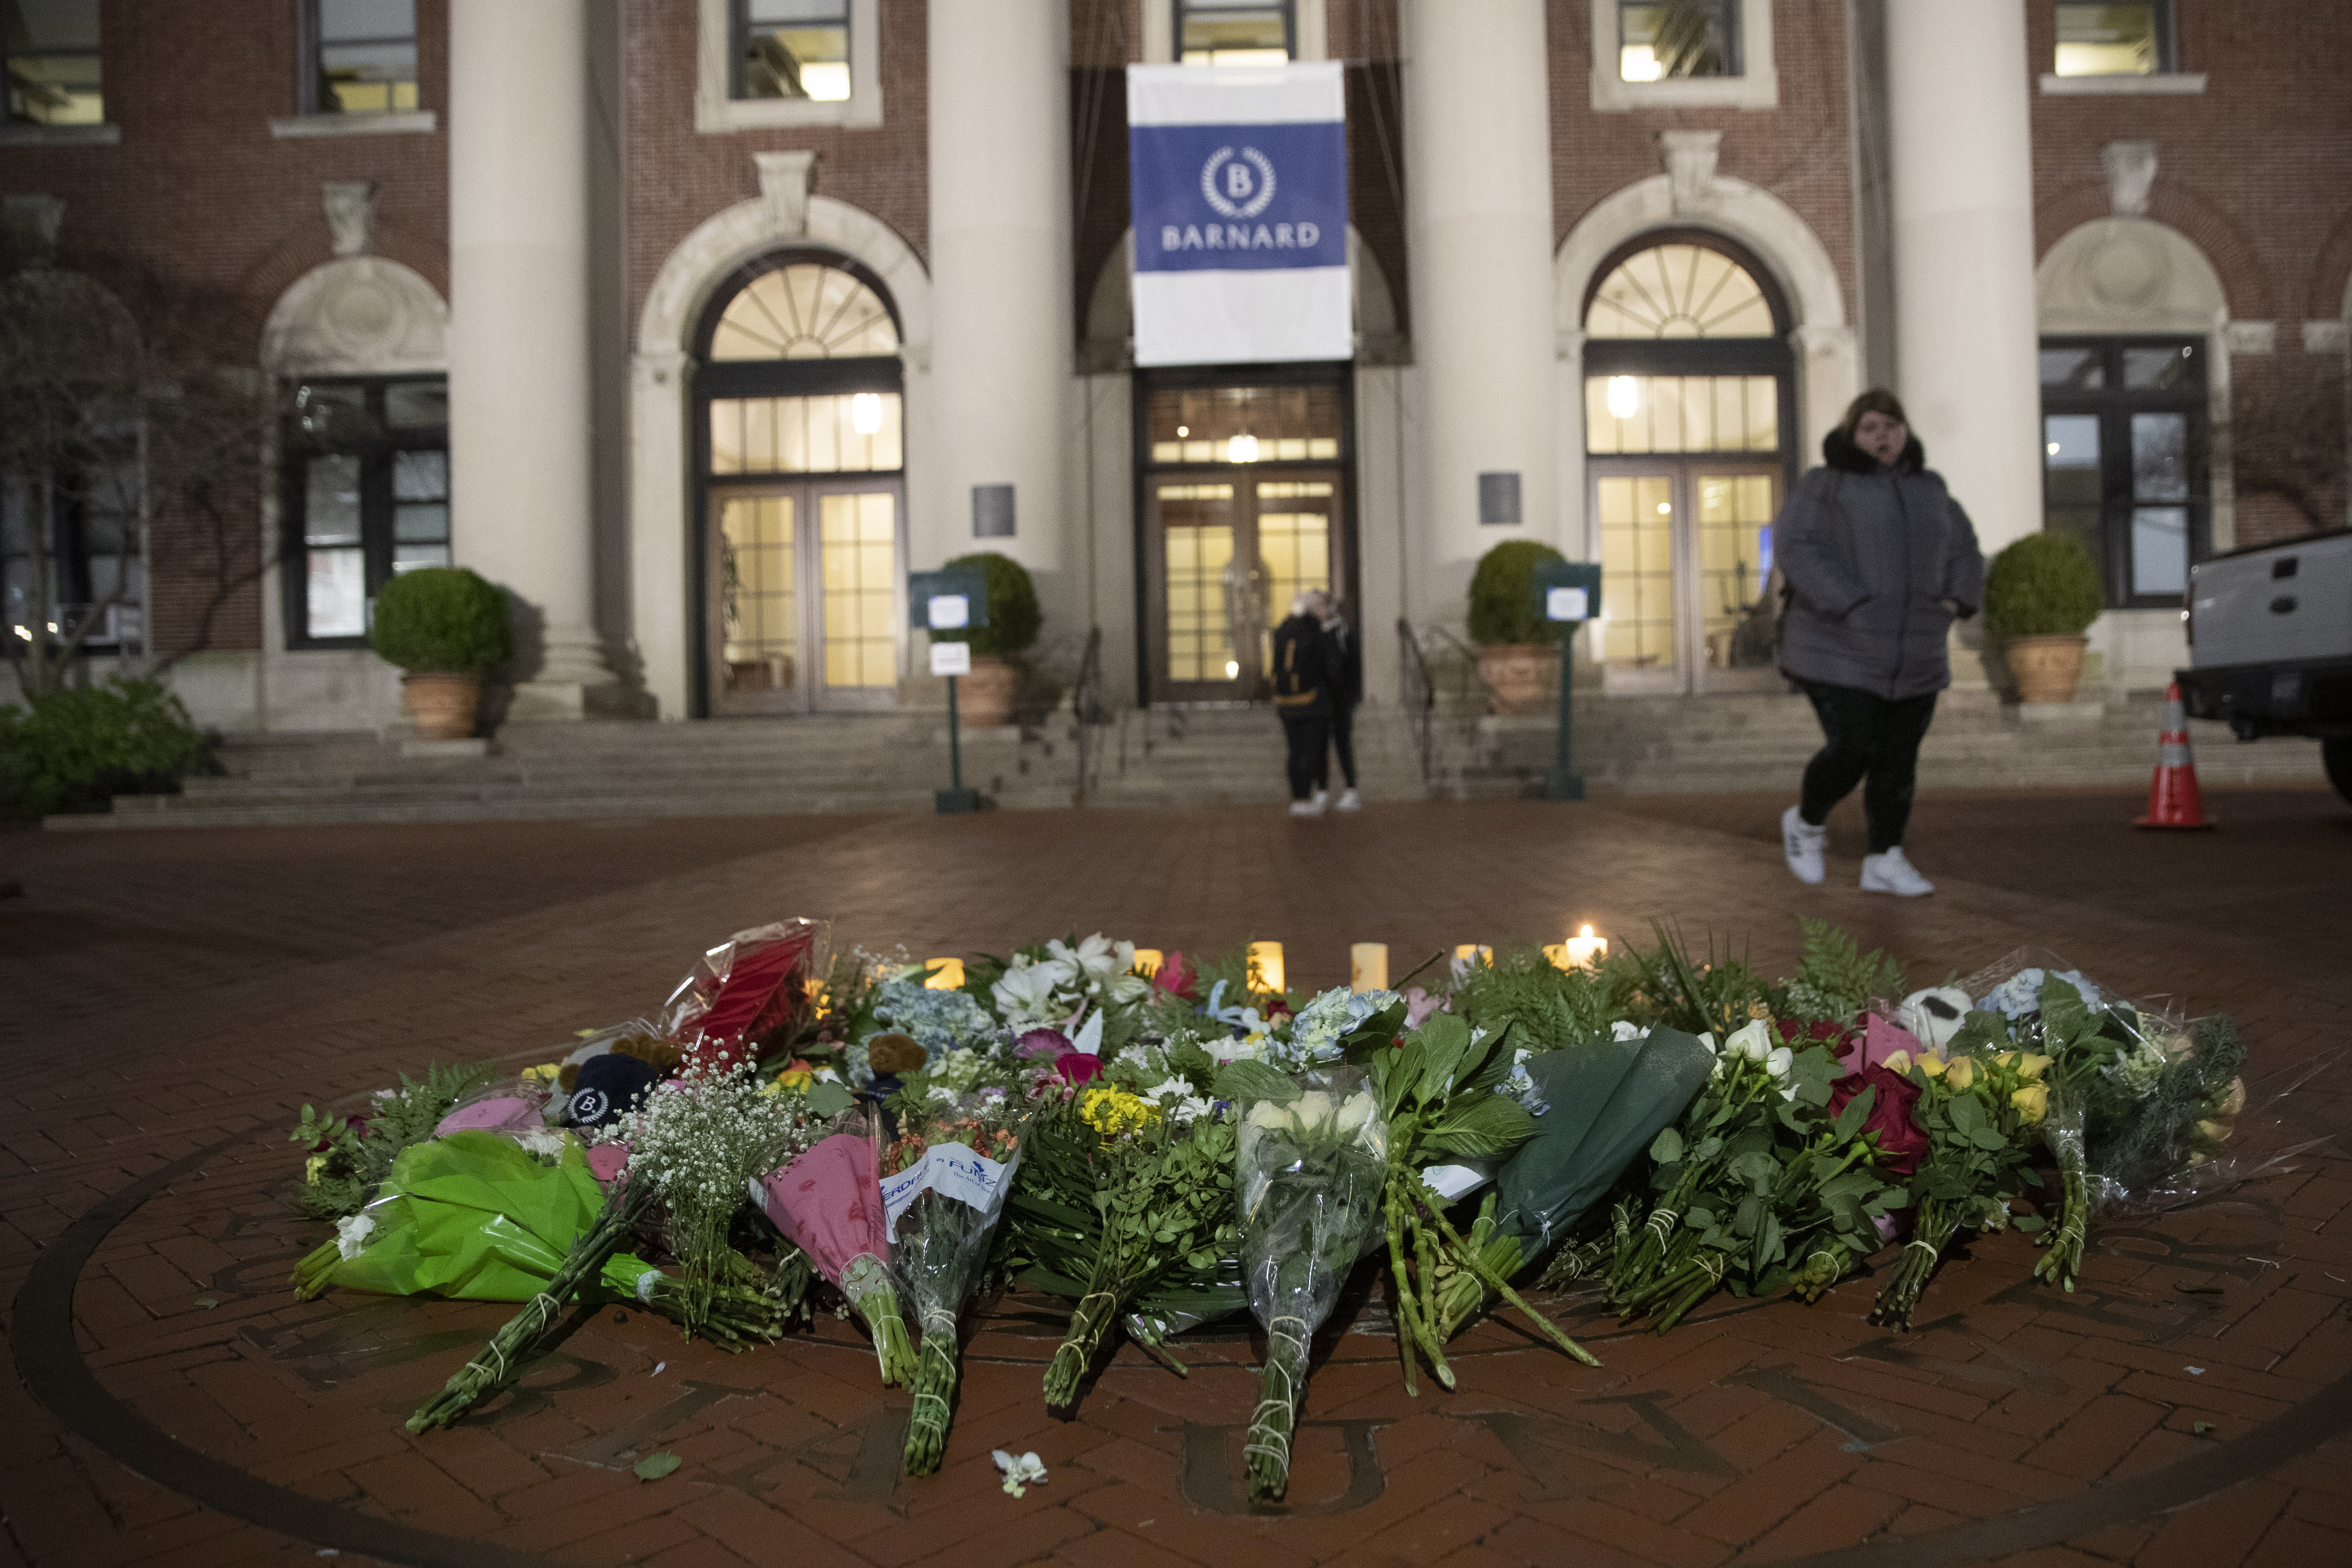 Police: 14-year-old held in Barnard College student death